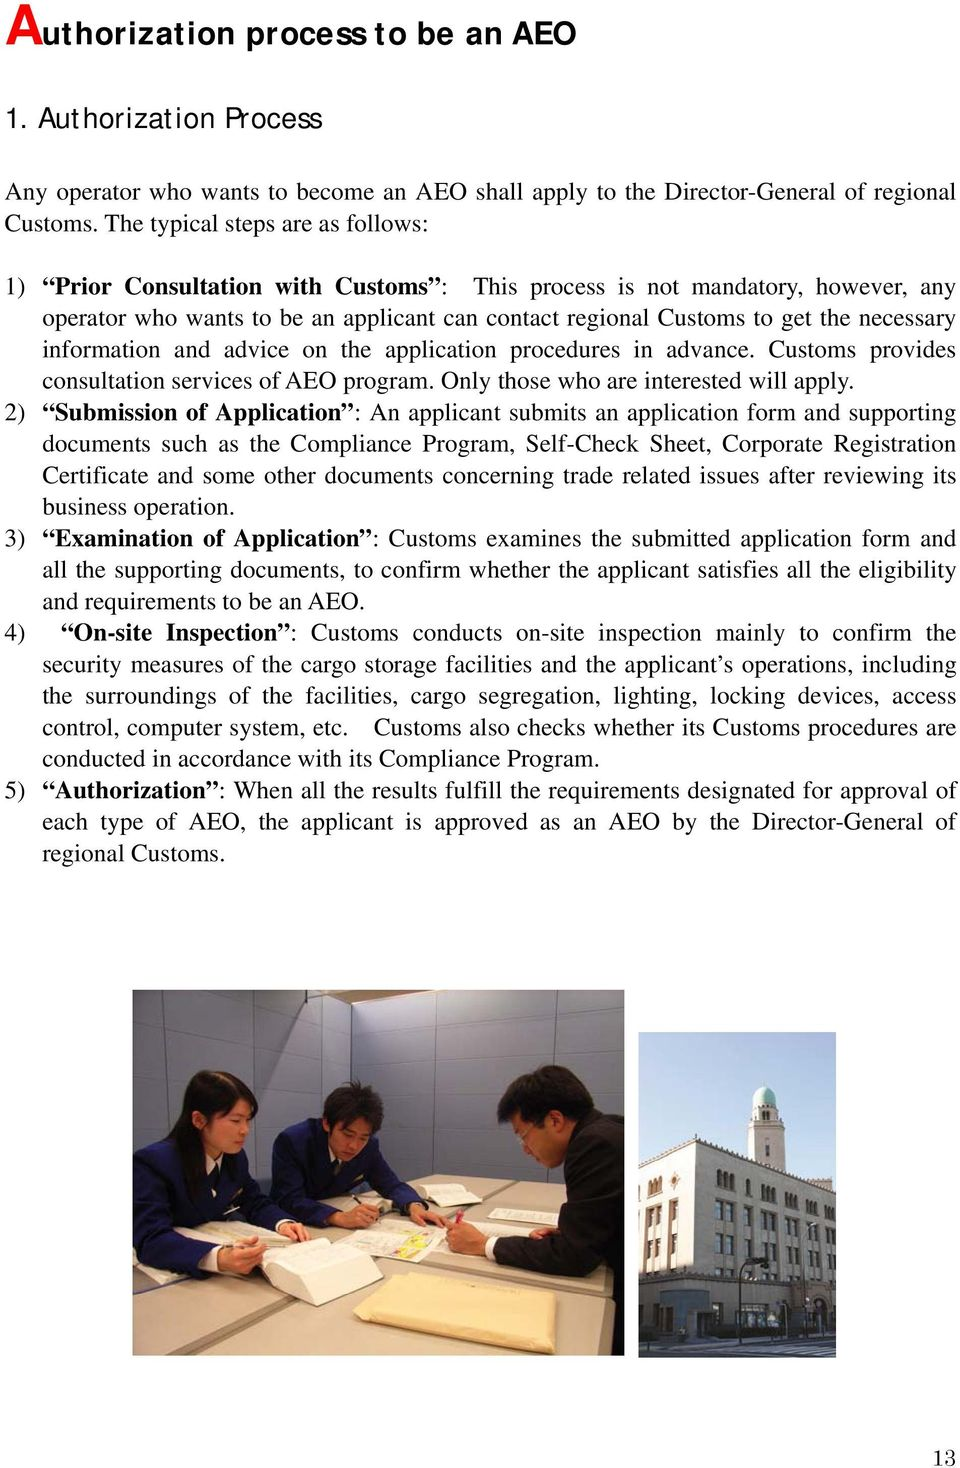 necessary information and advice on the application procedures in advance. Customs provides consultation services of AEO program. Only those who are interested will apply.